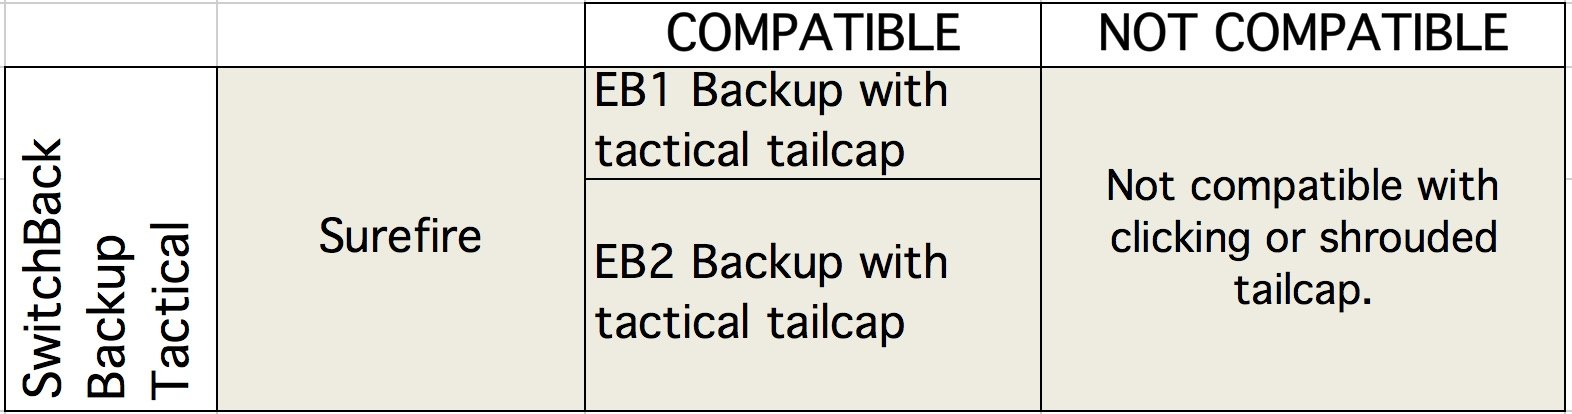 Lampes campatible Switchback Backup Taticial - outpost-shop.com